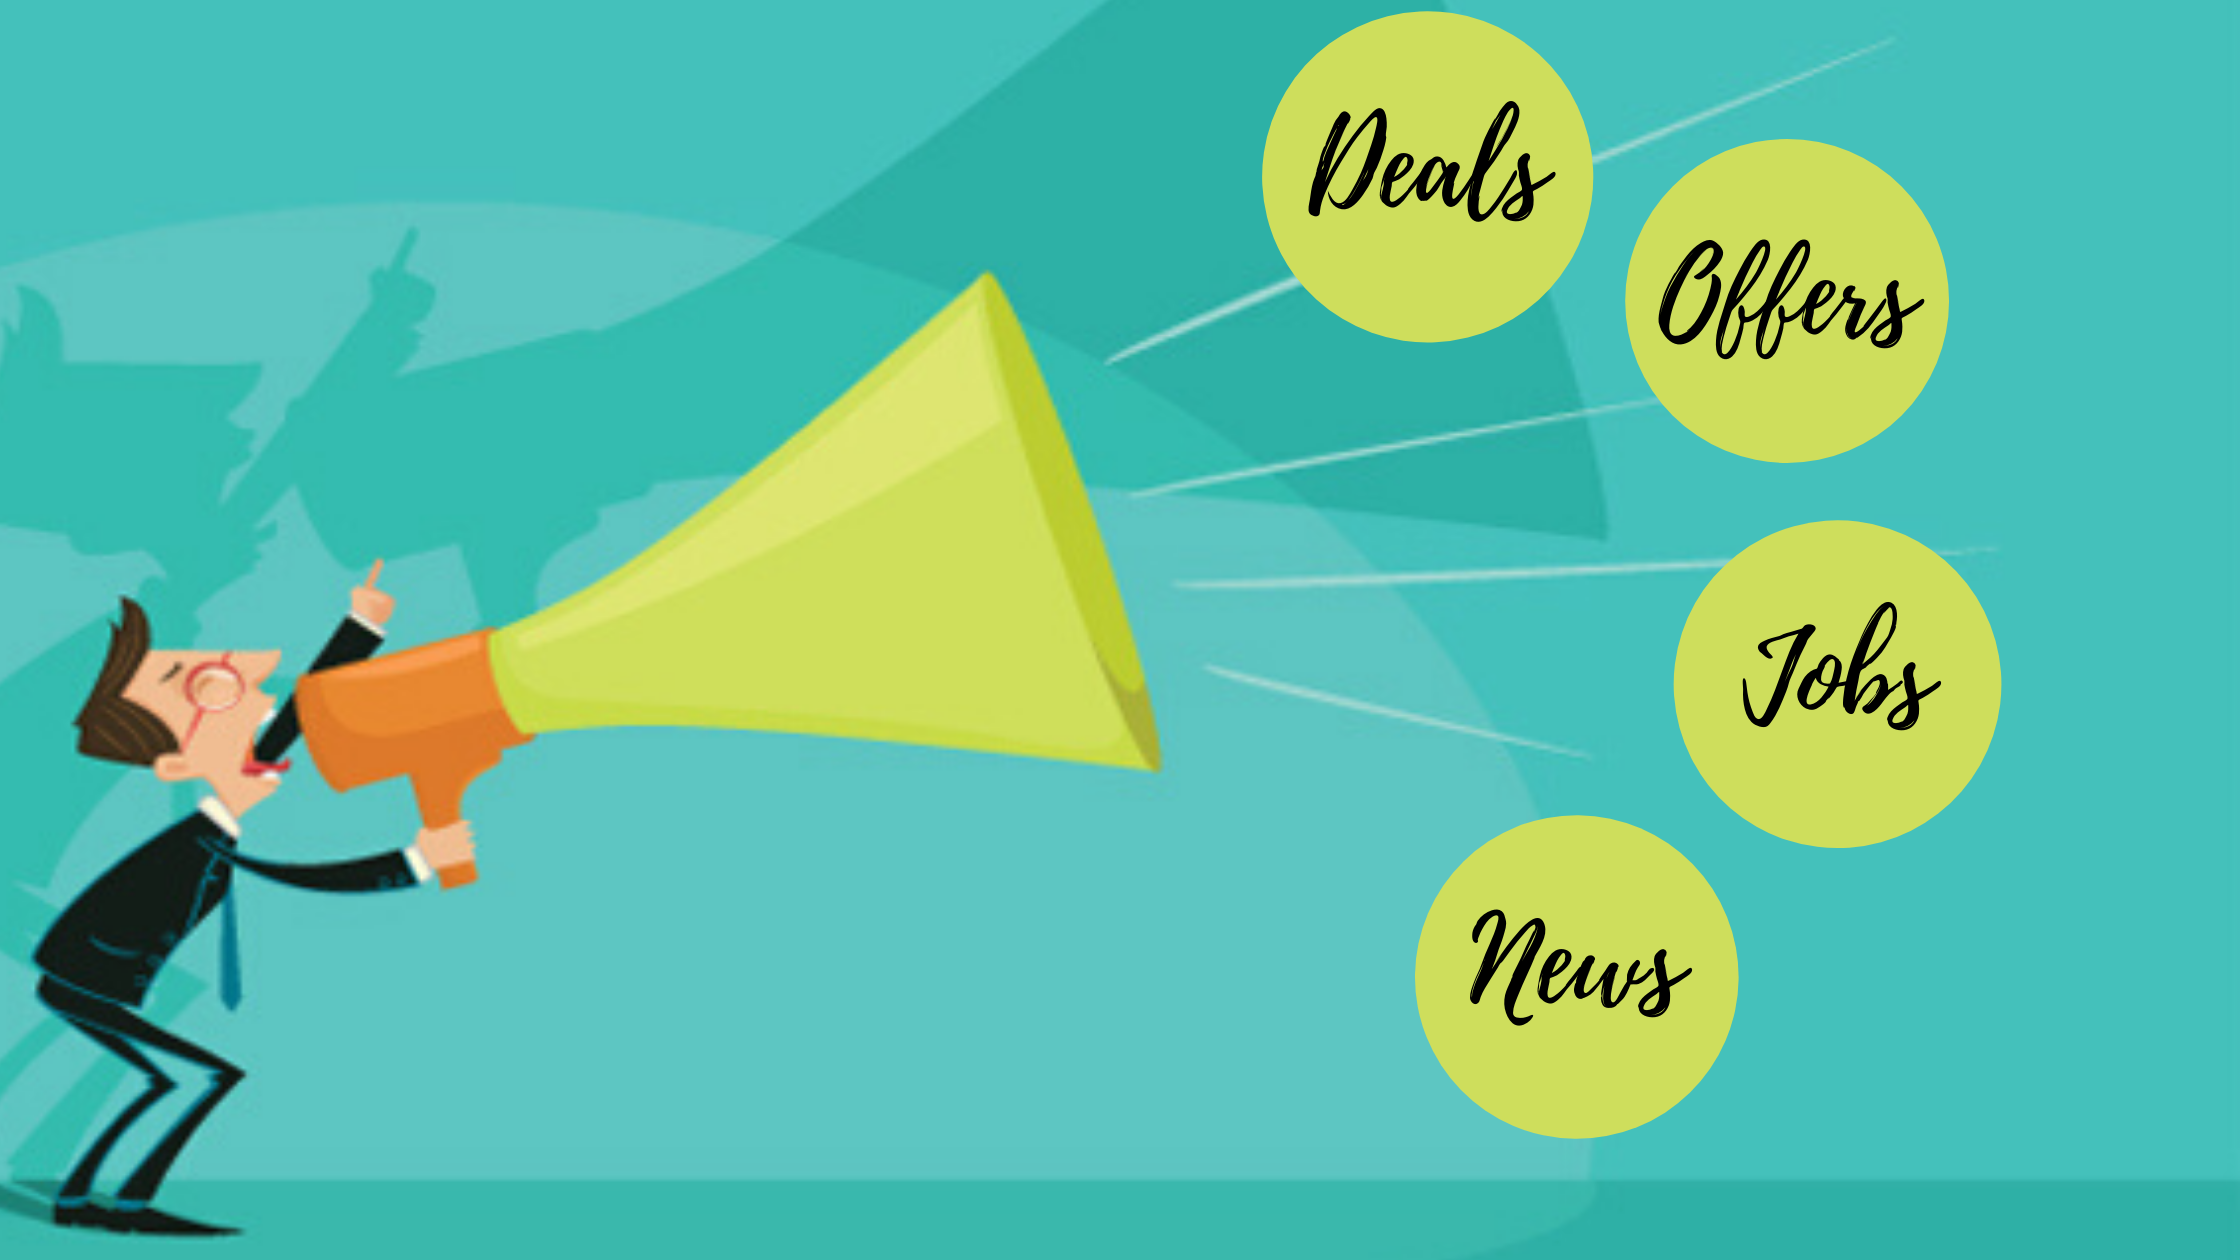 How to stay updated about nearby deals, offers, jobs, and news?